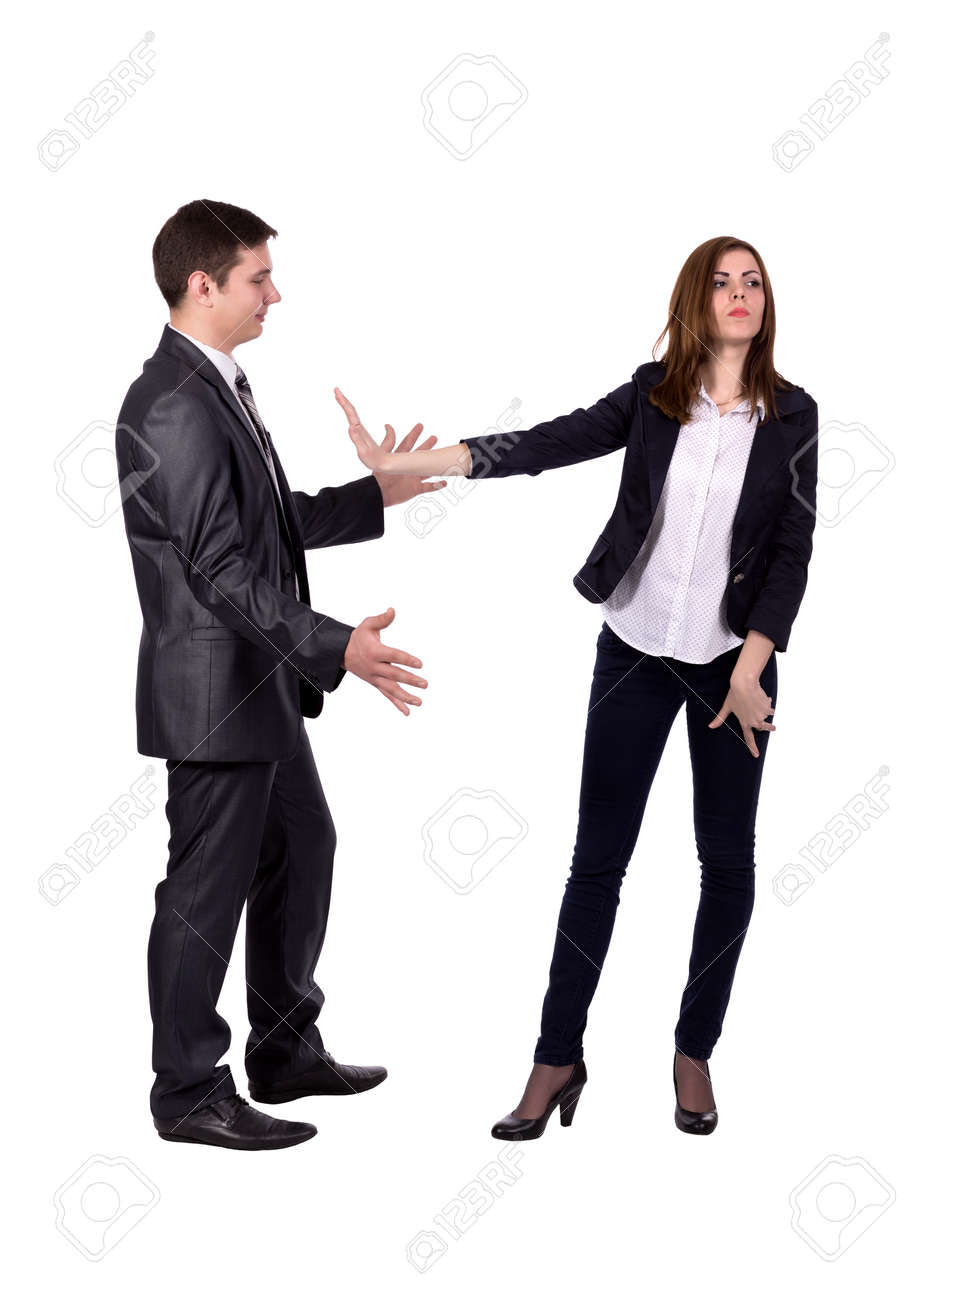 Stop harassment Image of two young adult people. Man attempts to harass lady, she expresses strong rejection gestures. Official dress code, white background, full body - 44976374